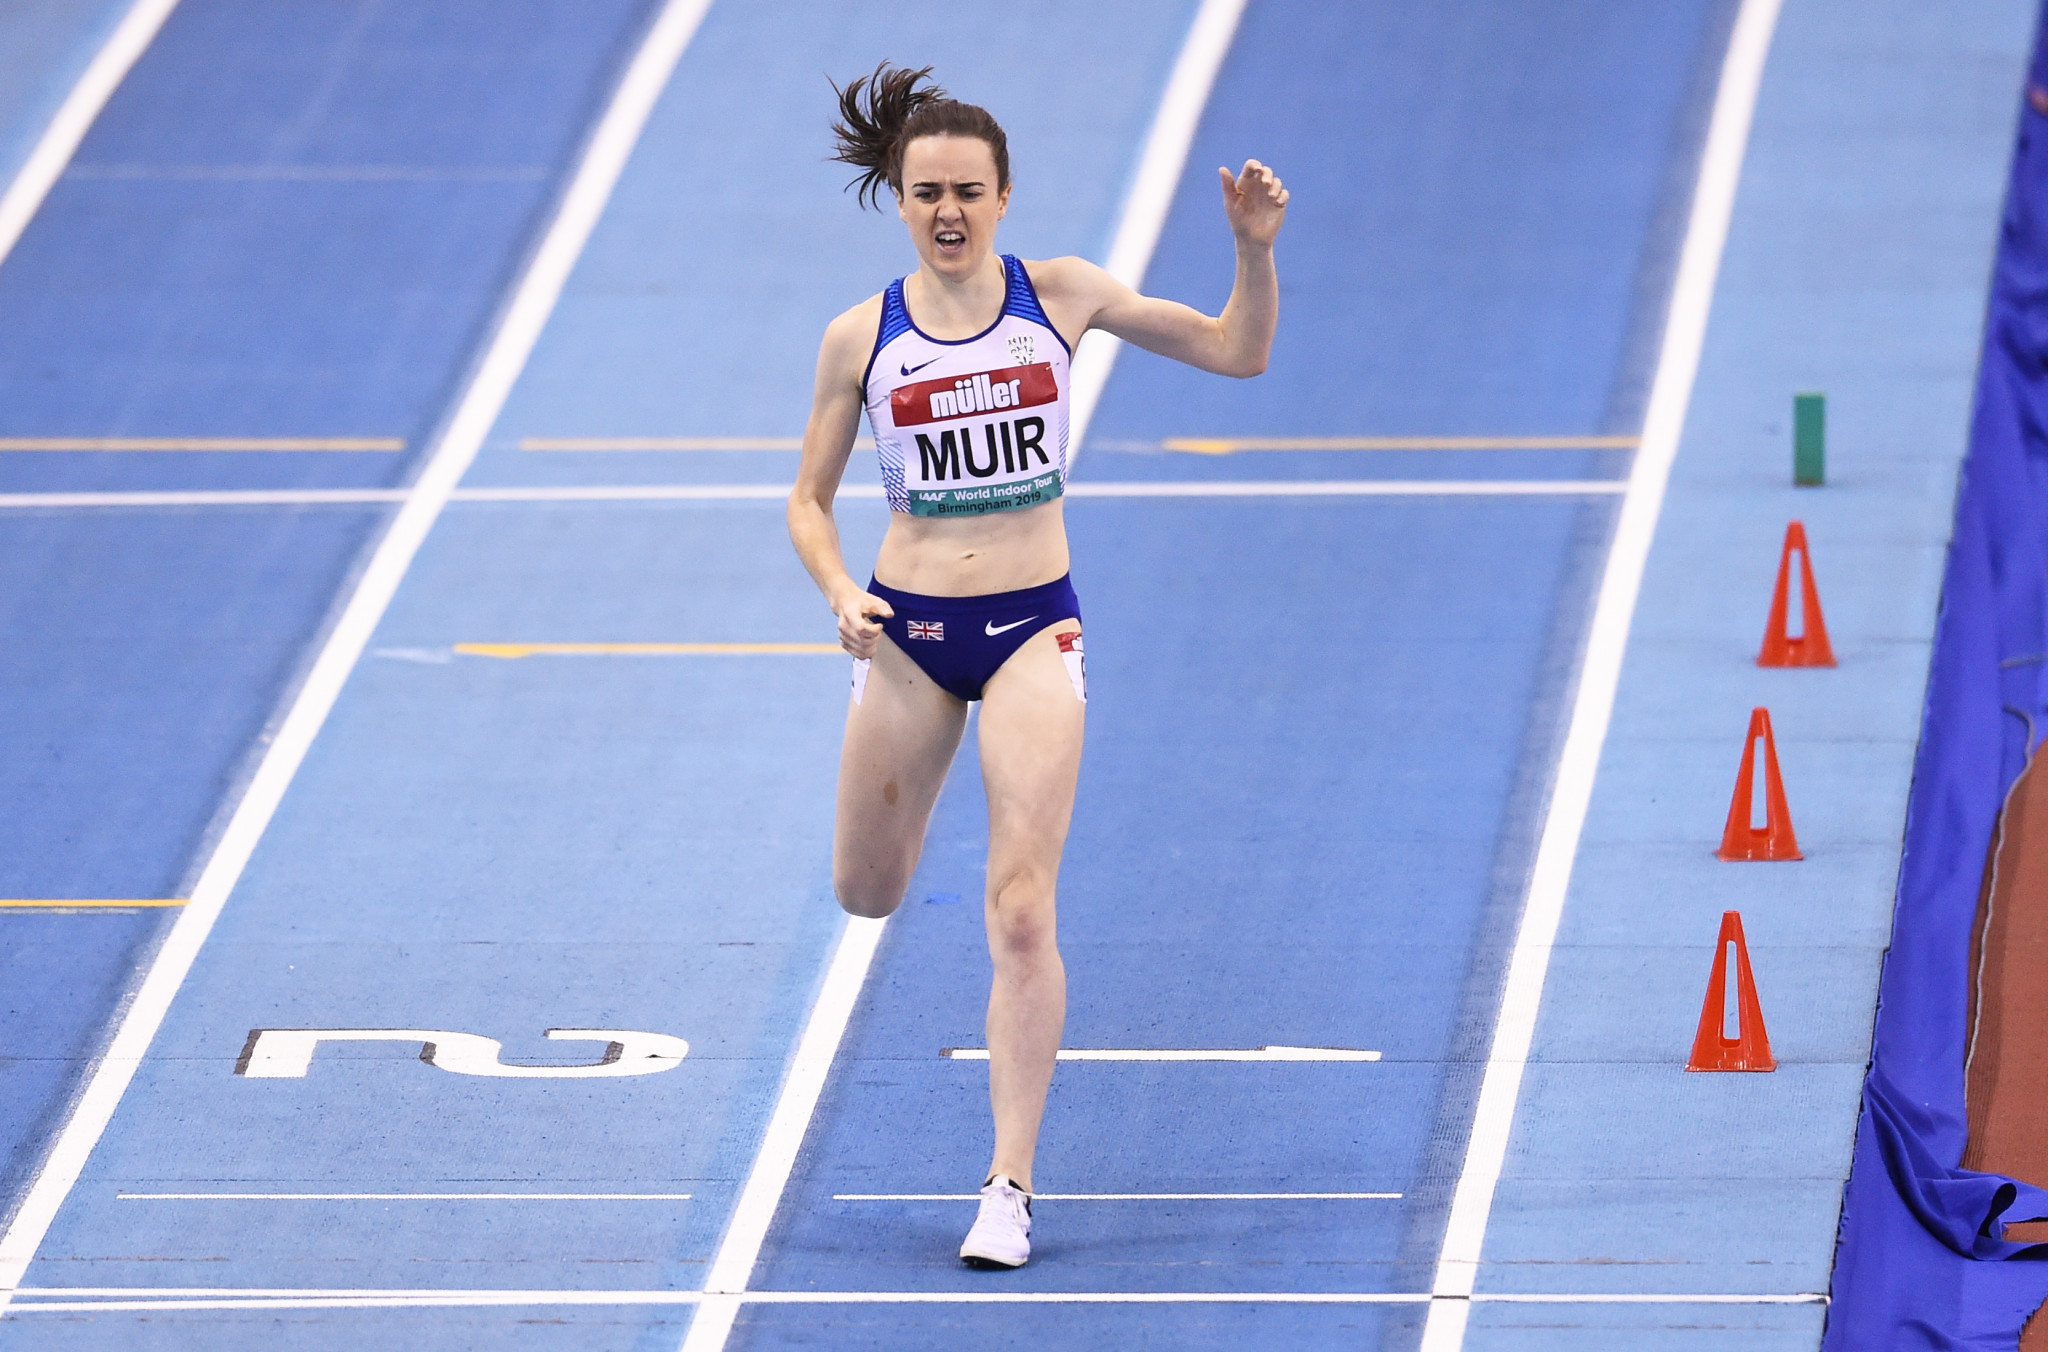 Laura Muir set a British indoor record in the women's mile ©Getty Images